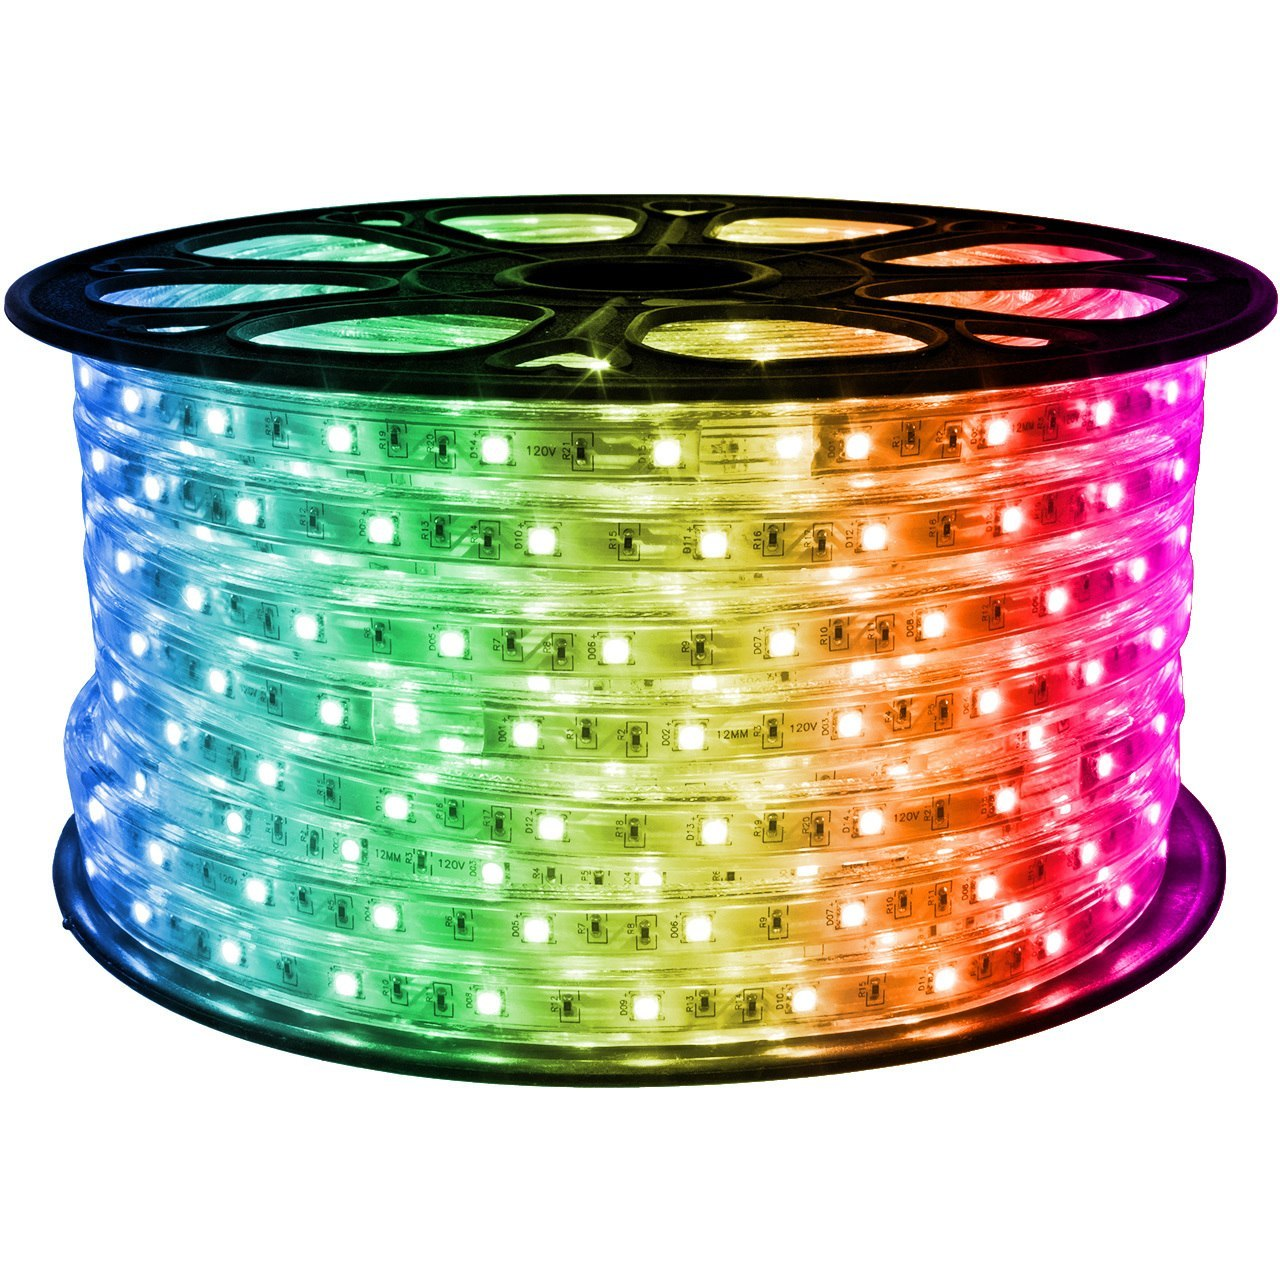 Swell Rgb Color Changing Led Strip Lights Spool Of 120 Volt Lights Wiring Cloud Staixaidewilluminateatxorg